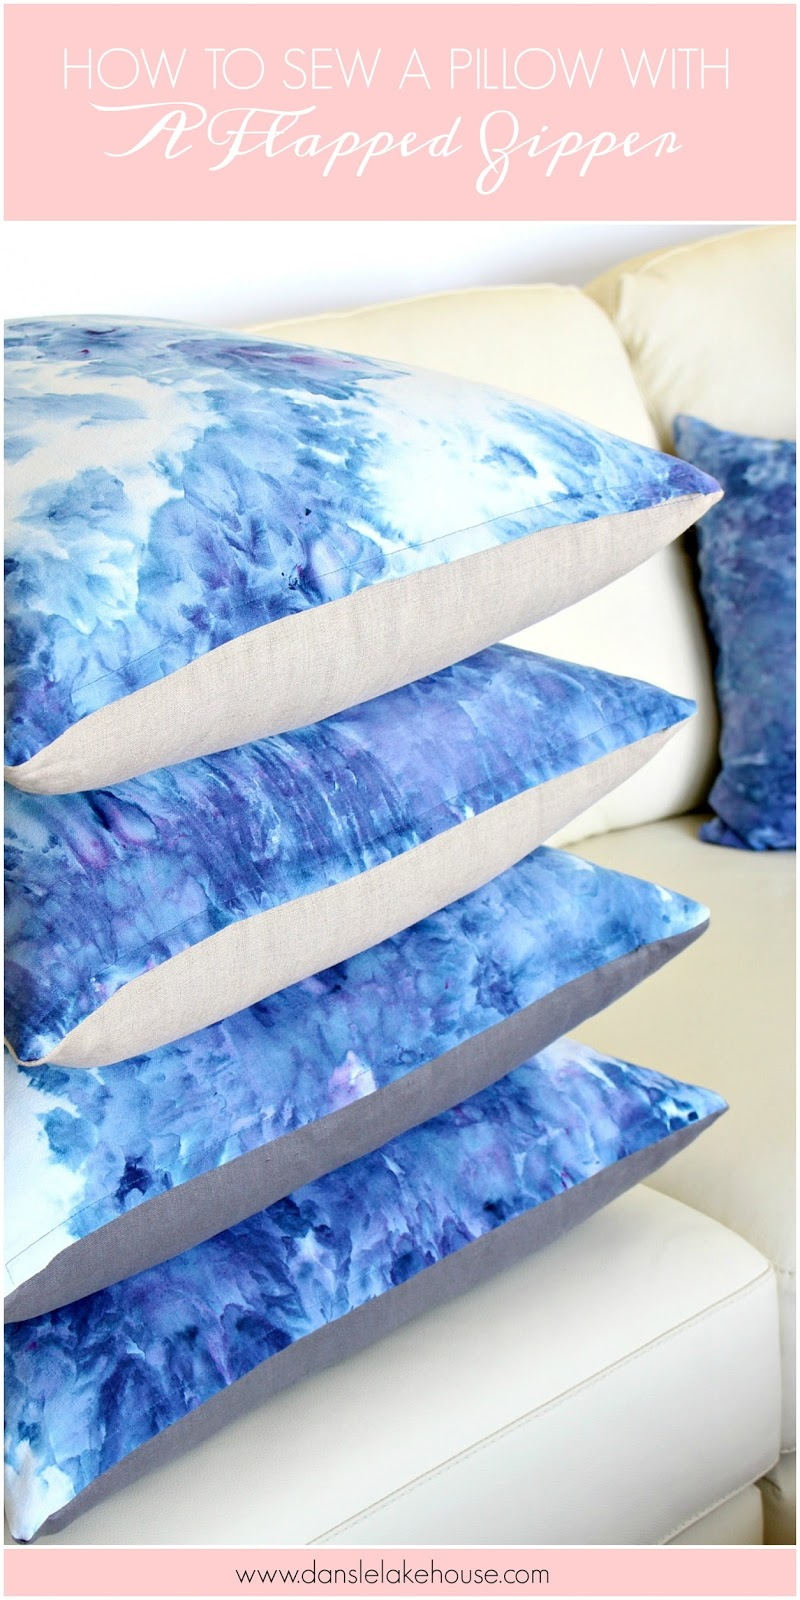 How to sew a pillow with a flapped zipper | @danslelakehouse & How to Sew a Pillow with a Flapped Zipper | Dans le Lakehouse pillowsntoast.com